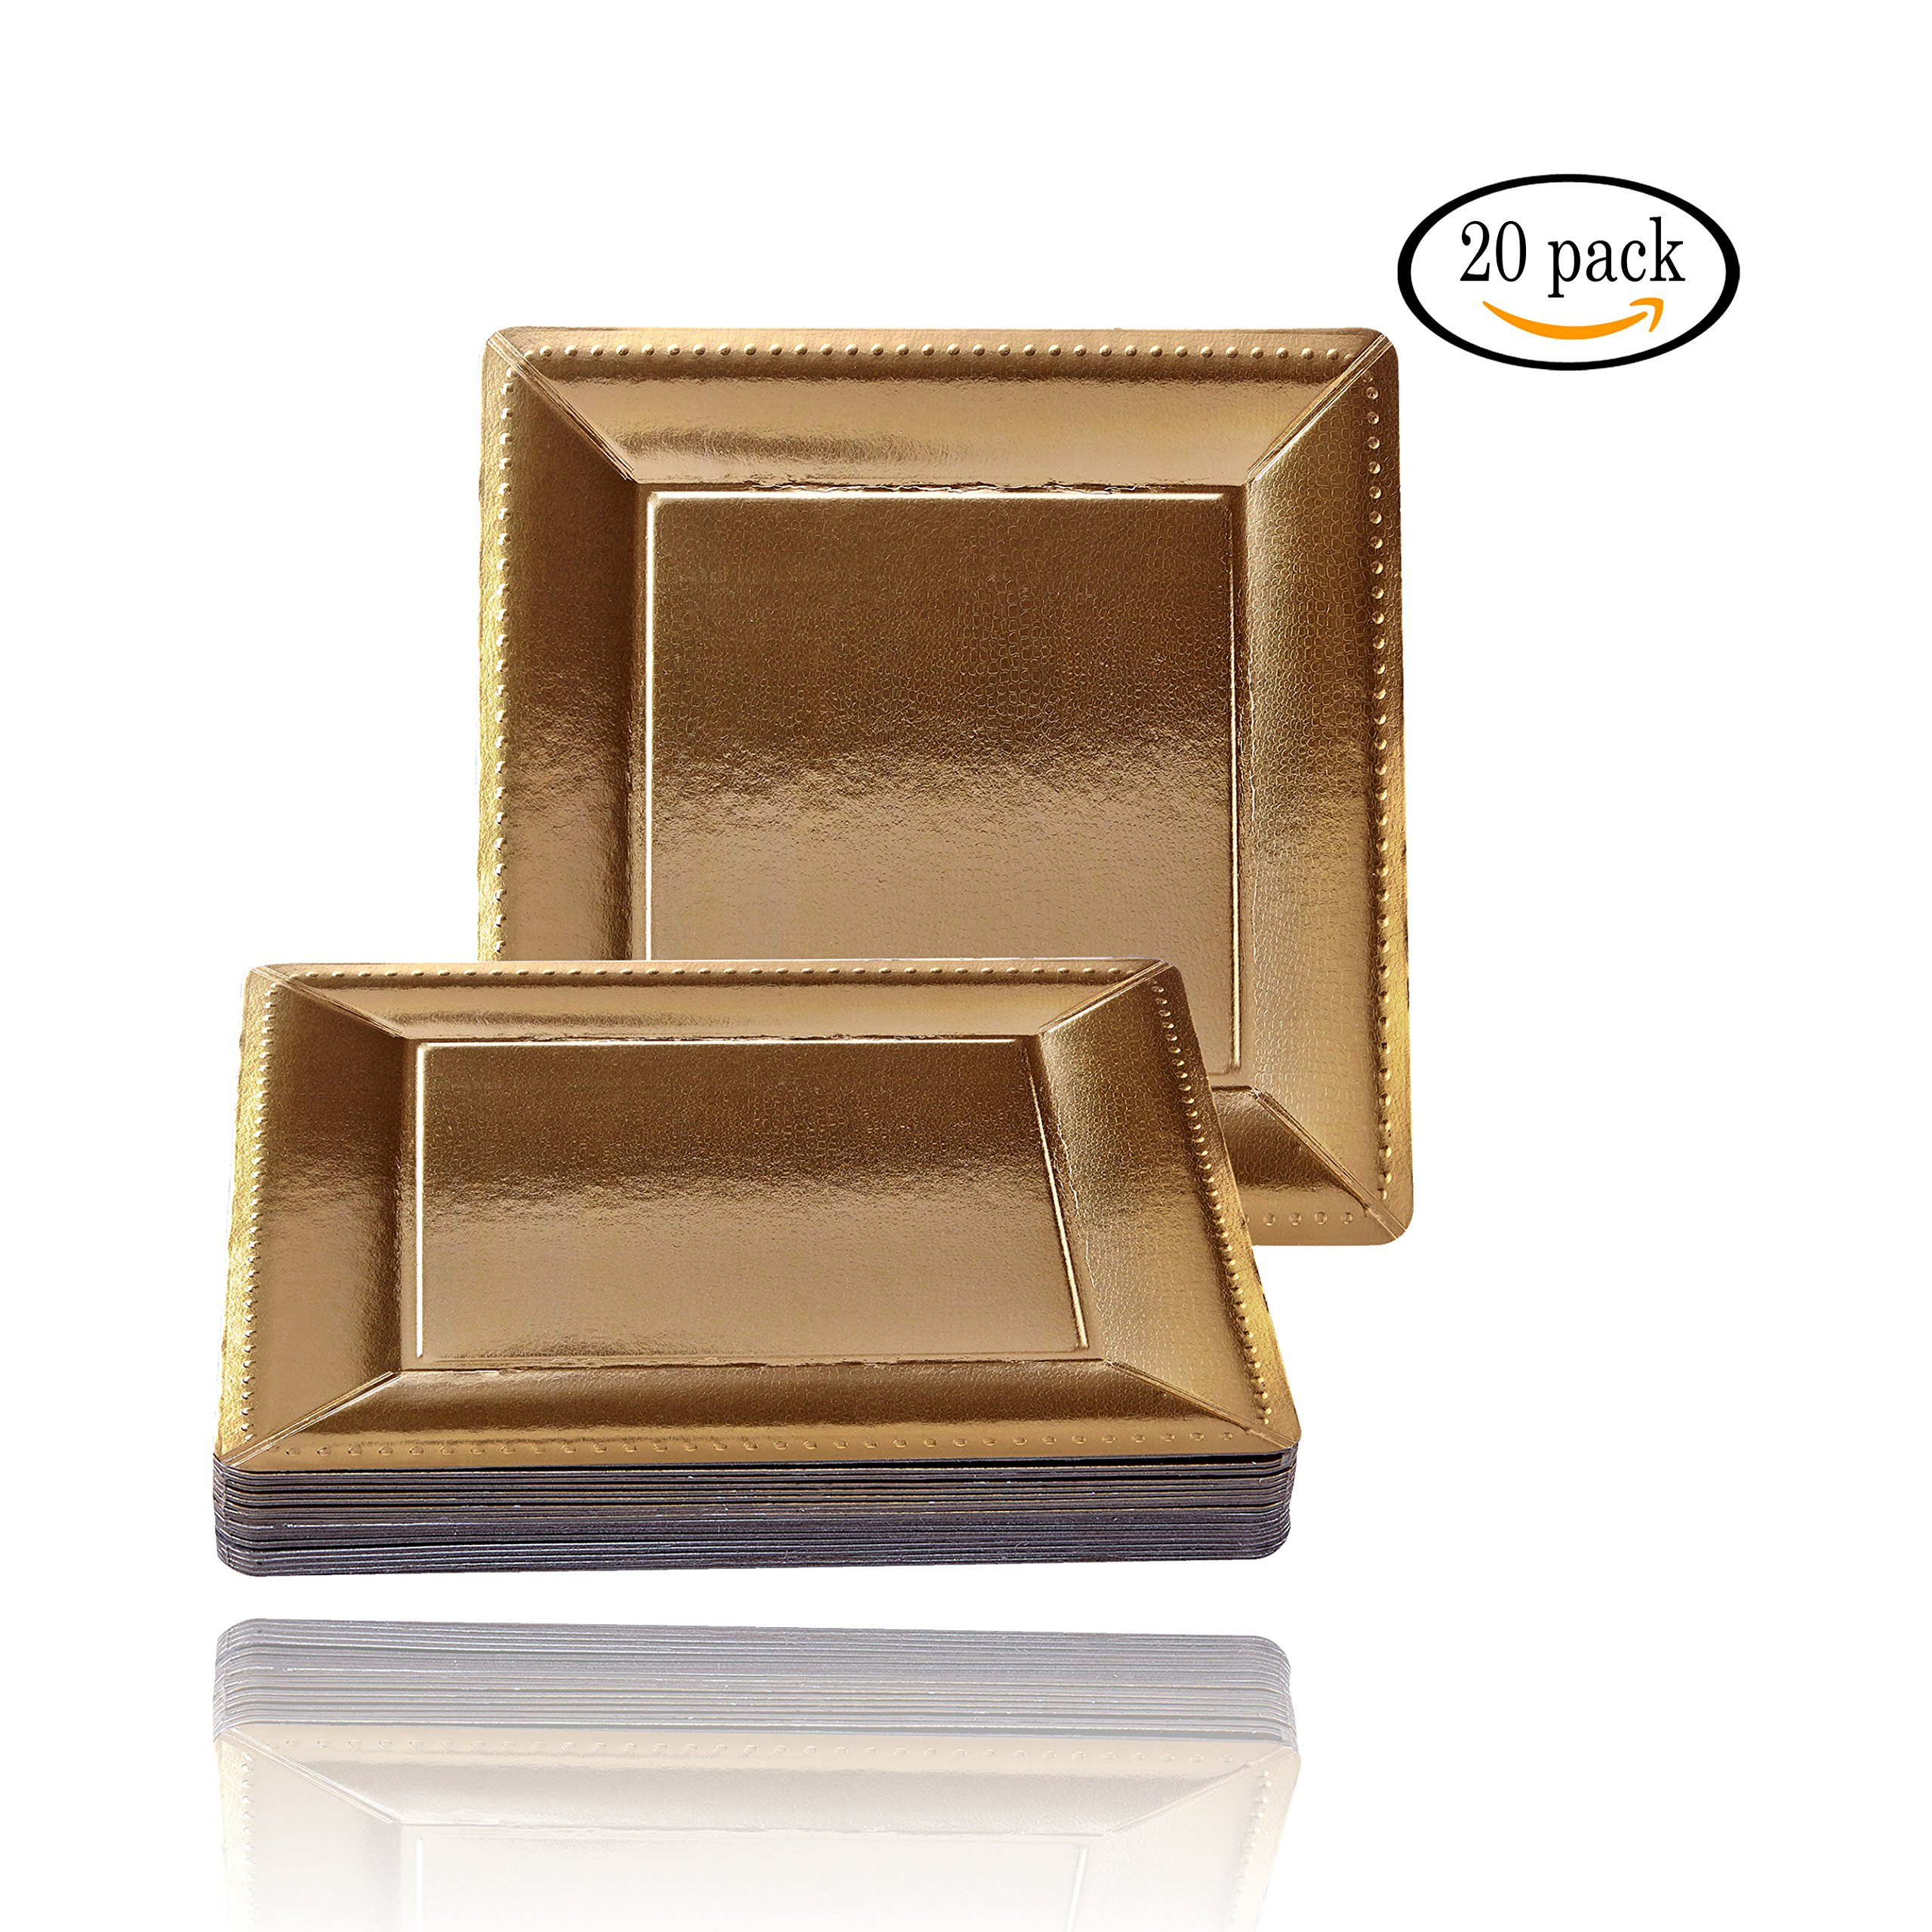 DISPOSABLE SQUARE CHARGER PLATES - 20pc (Metallic/Gold)